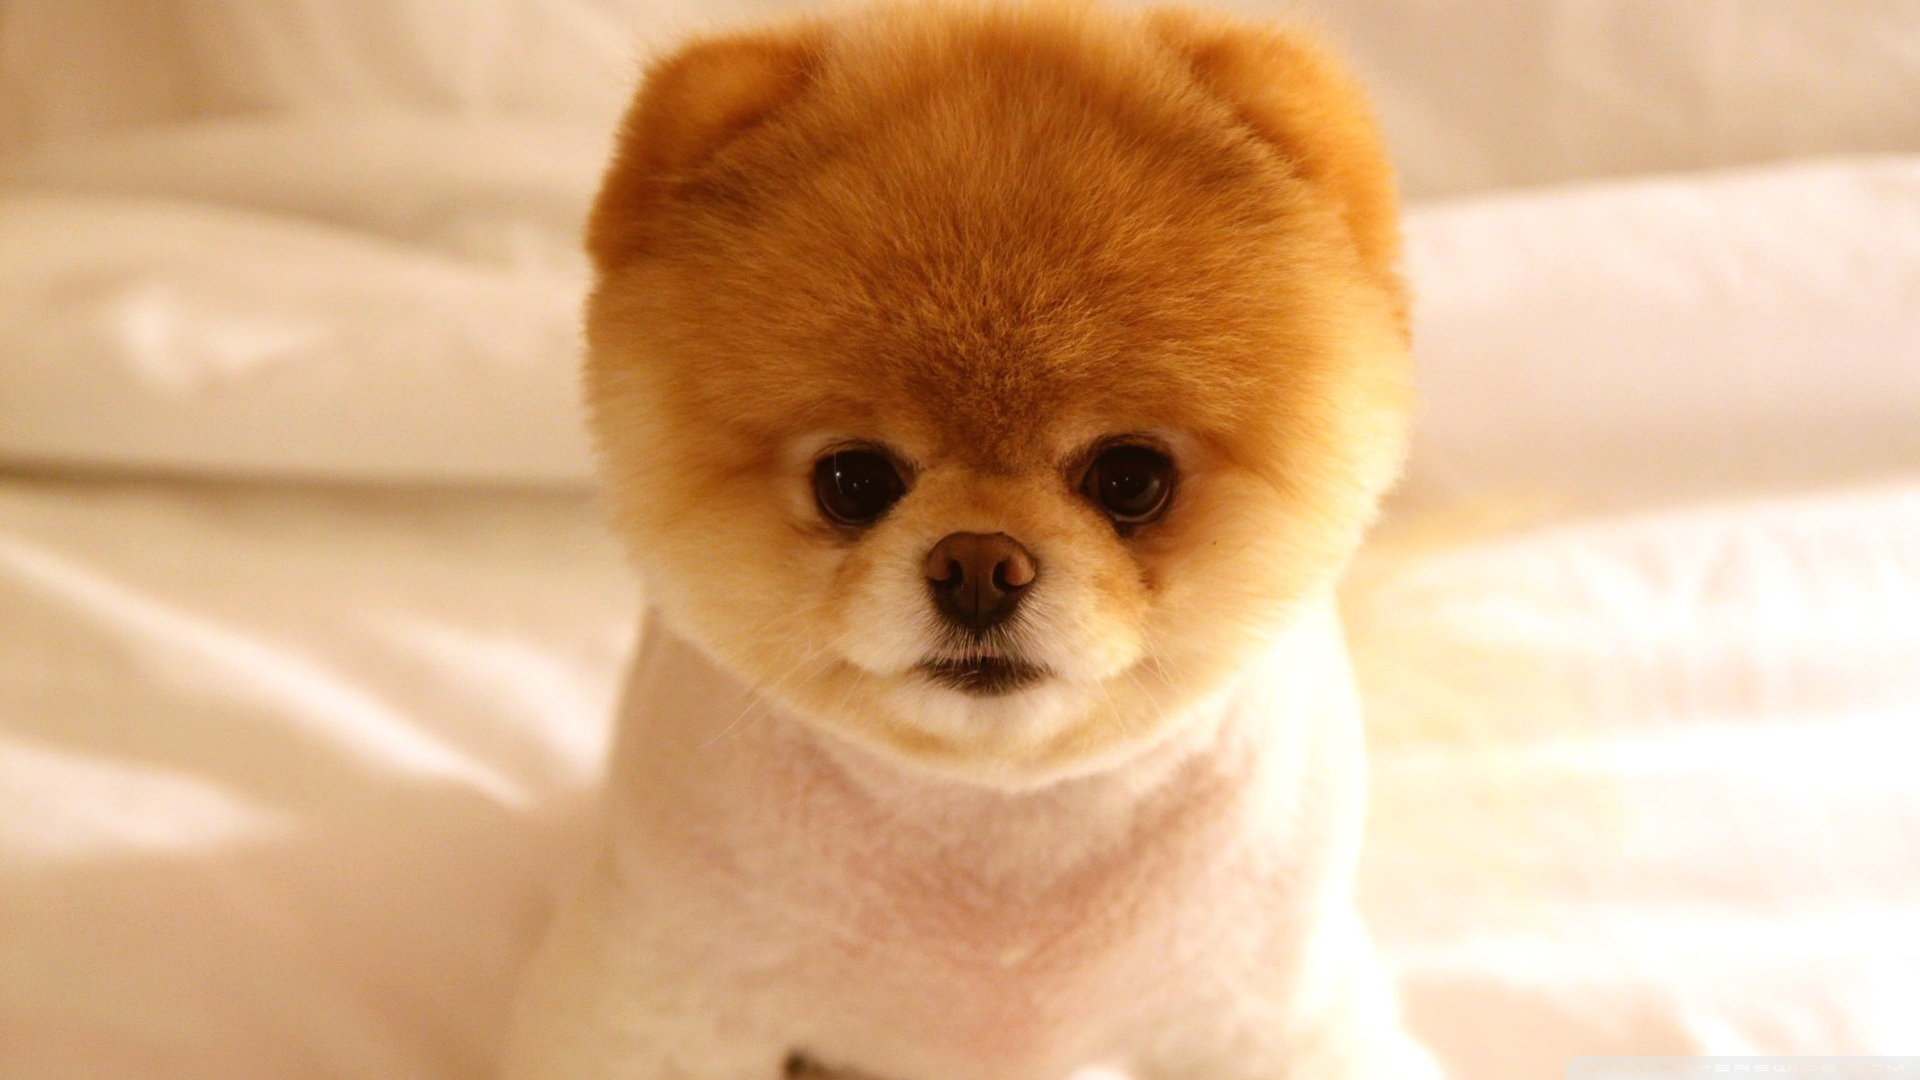 Cute dog 3   Doge Wallpaper 1920x1080 105592 1920x1080